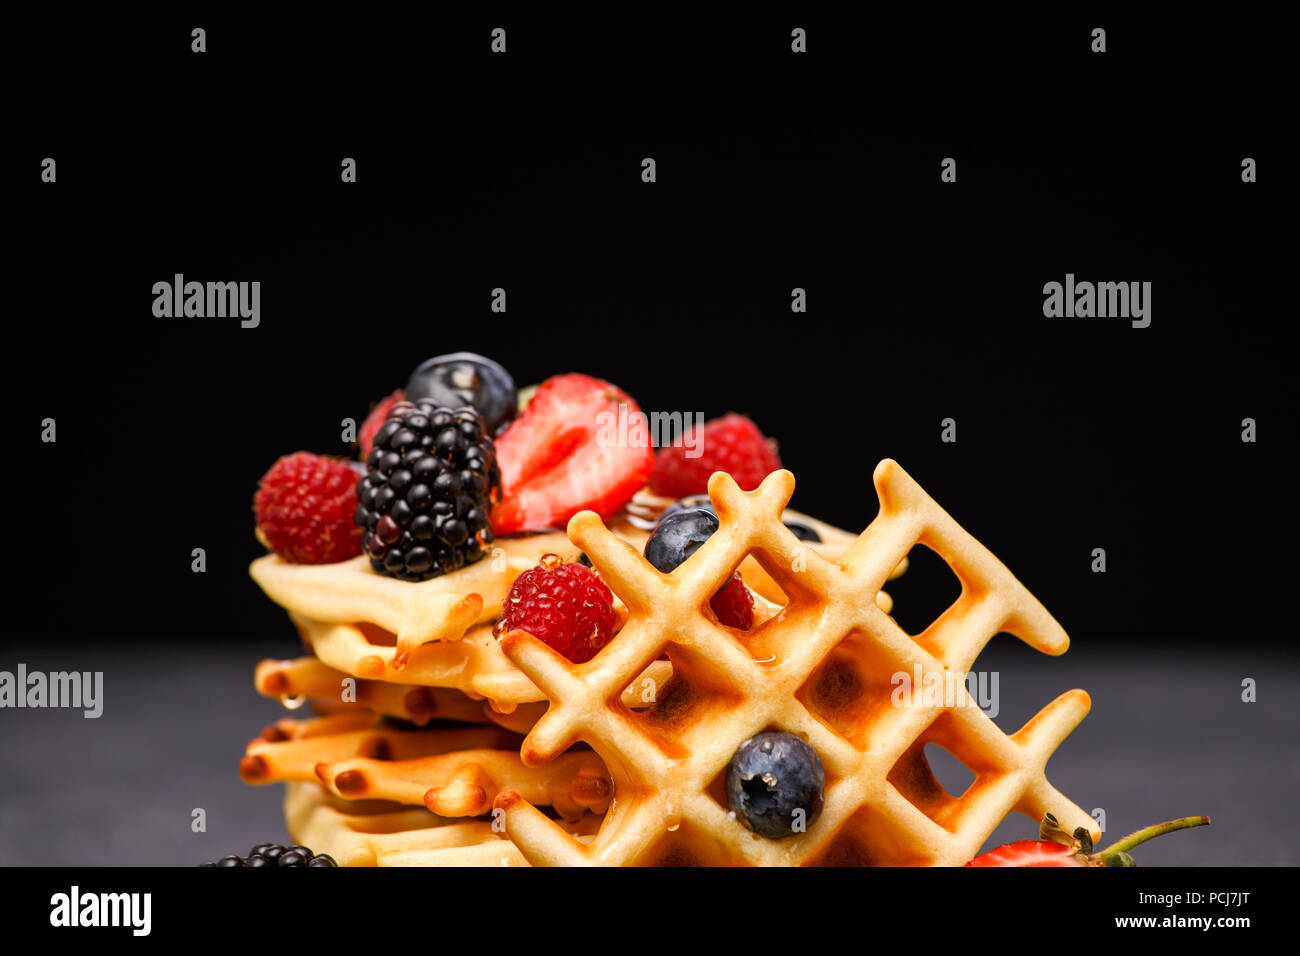 Photo of fresh viennese waffles with berries pouring honey against blank background - Stock Image